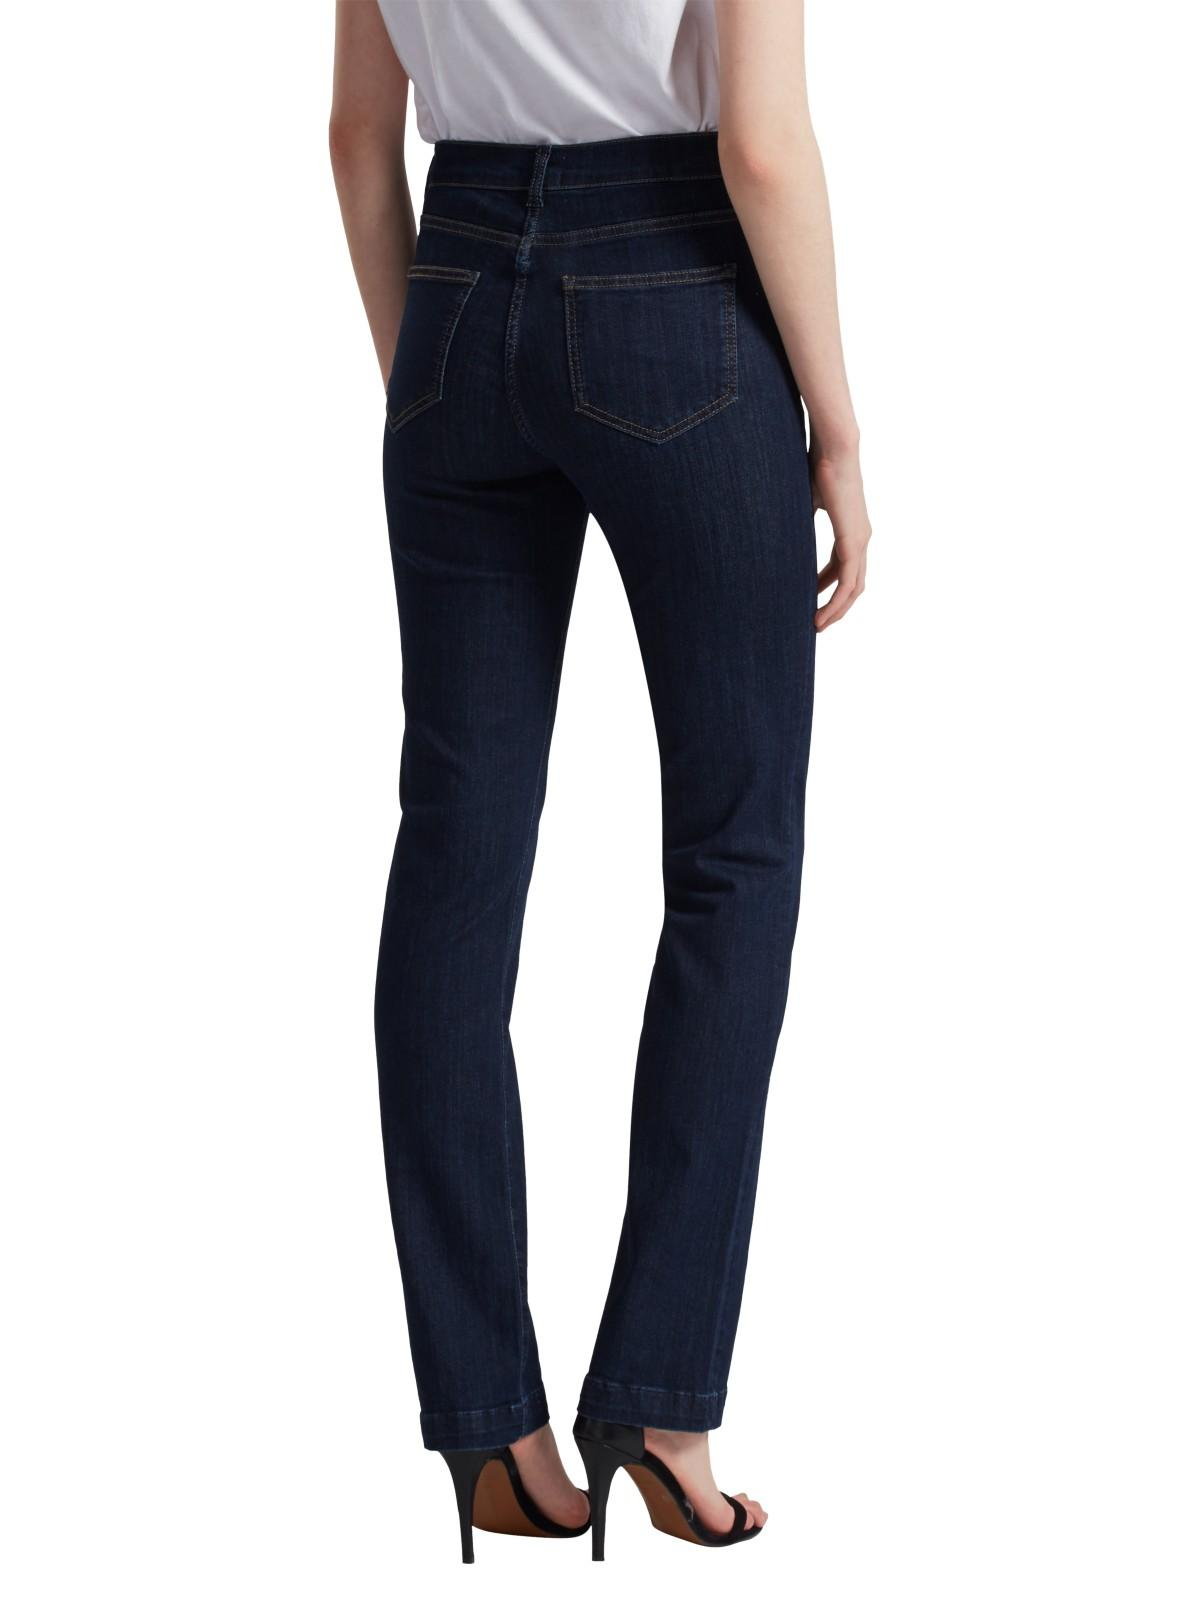 French Connection Lean Bootcut Rebound Denim Jeans in Rinse (Blue)